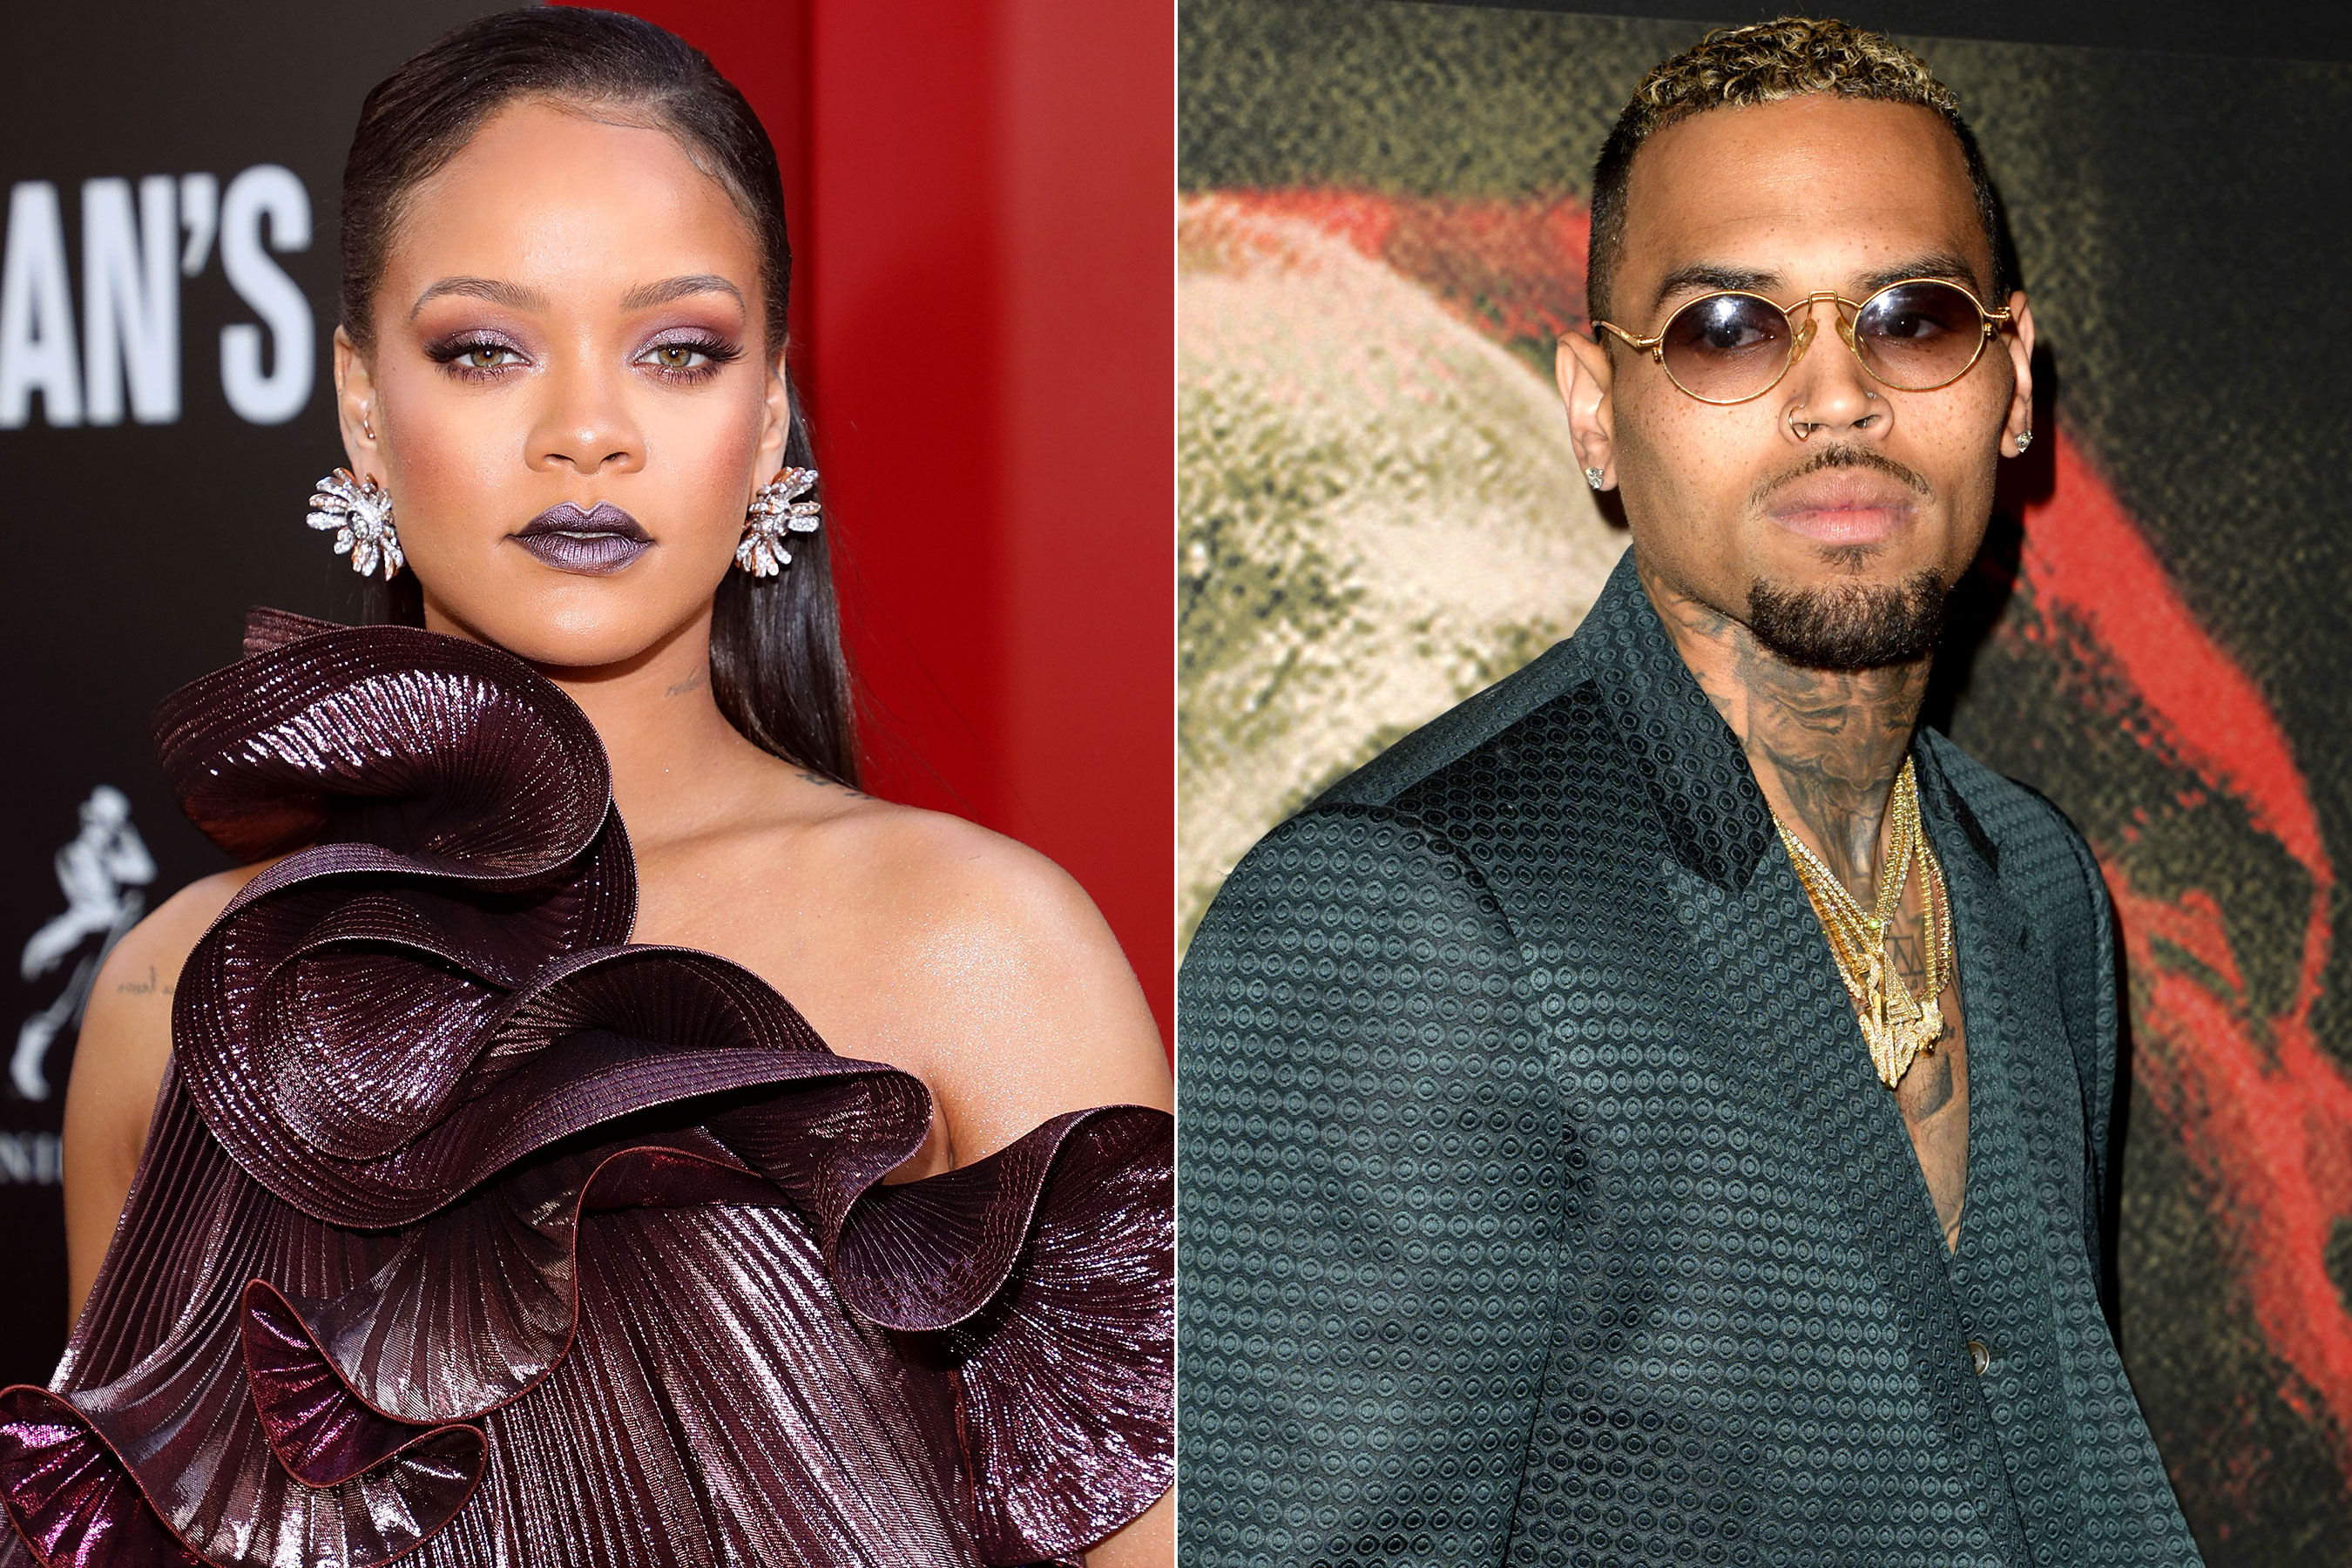 CHRIS BROWN STILL LOVES RIHANNA?